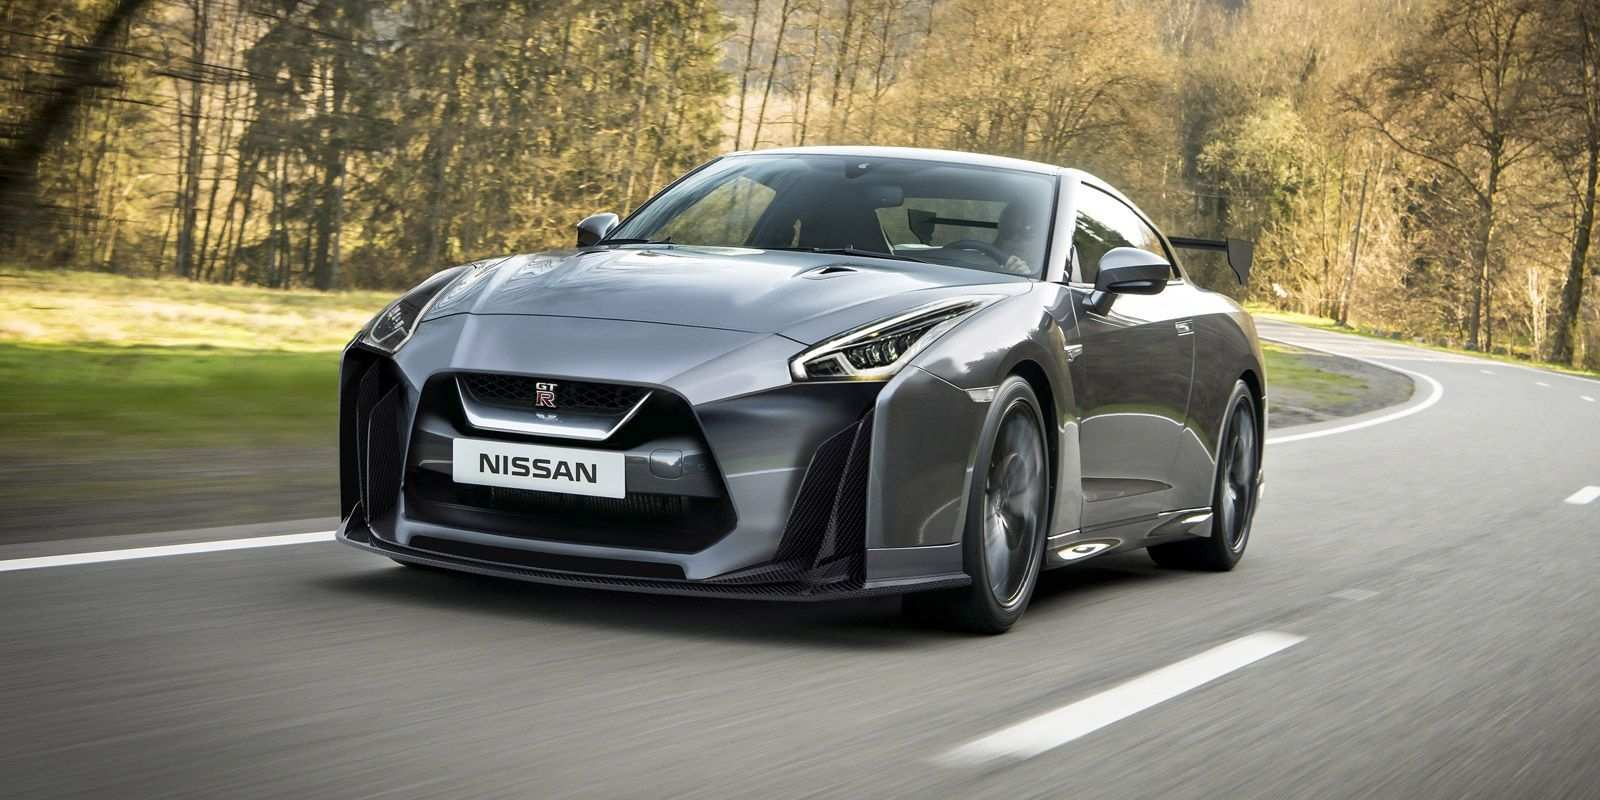 27 Great Best 2019 Nissan Skyline Gtr Price Speed Test with Best 2019 Nissan Skyline Gtr Price